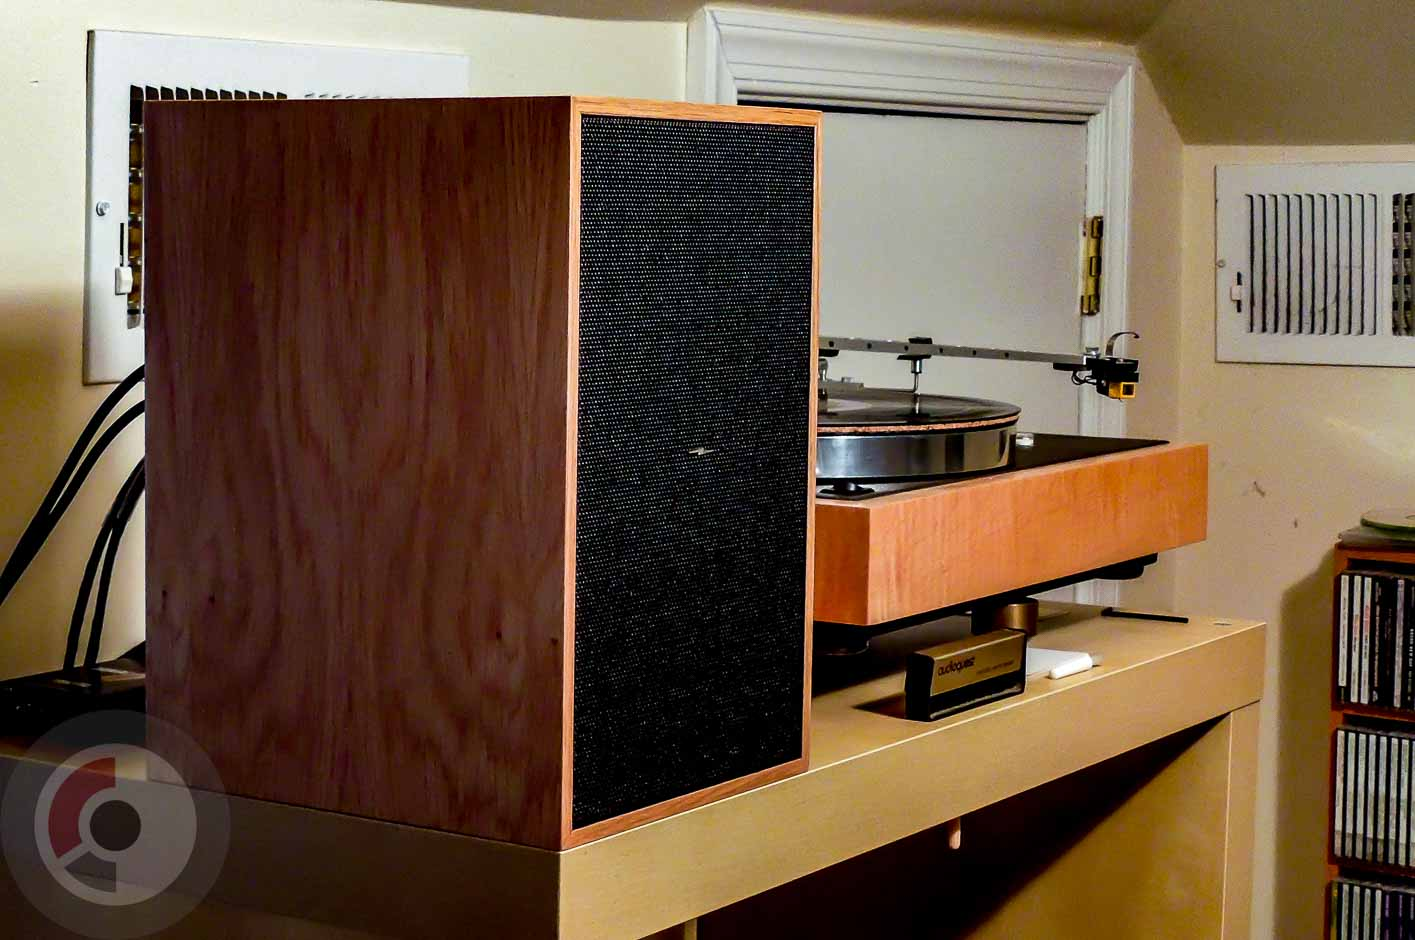 30995fbaa Mini-Review: Shinola Audio Bookshelf Speakers | Part-Time Audiophile